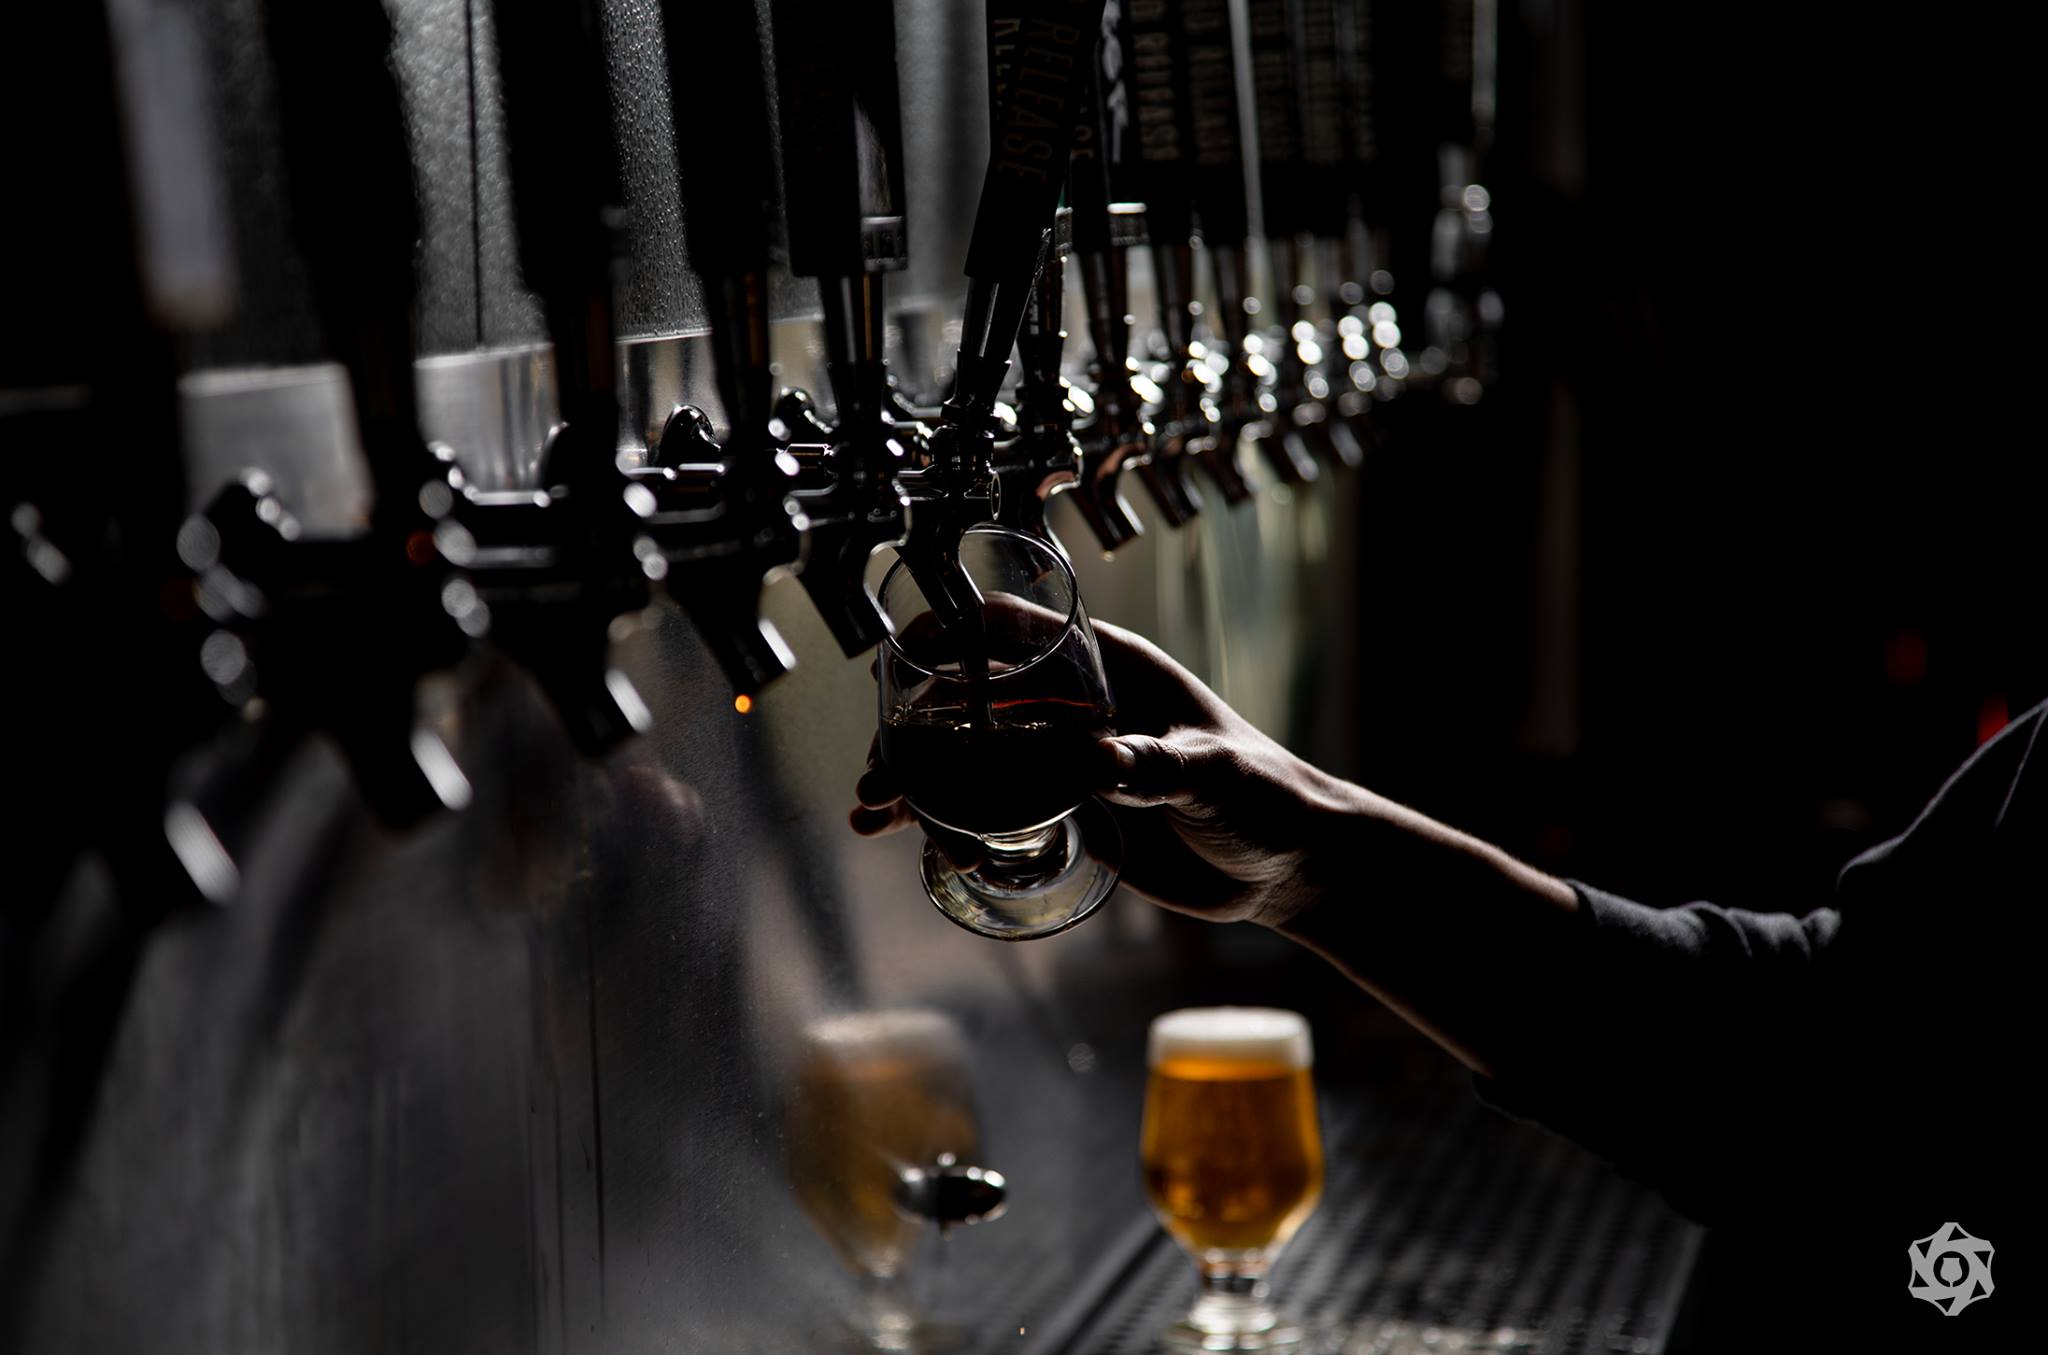 photo by Dustin Hall, The Brewtography Project